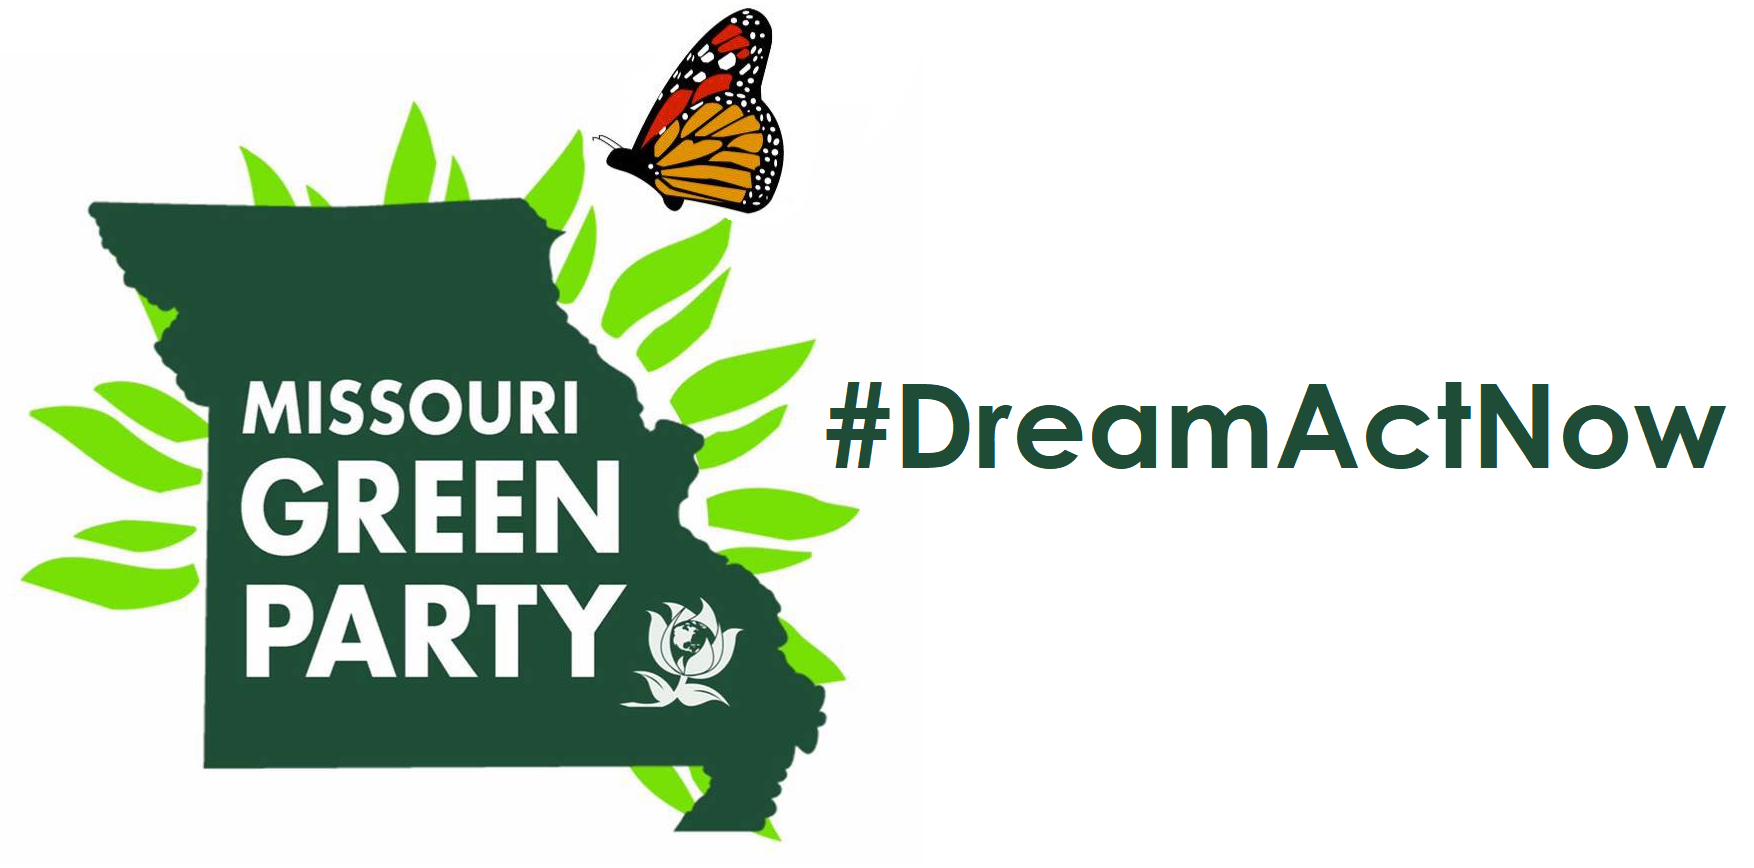 Missouri Green Party logo with Monarch - #DreamActNow